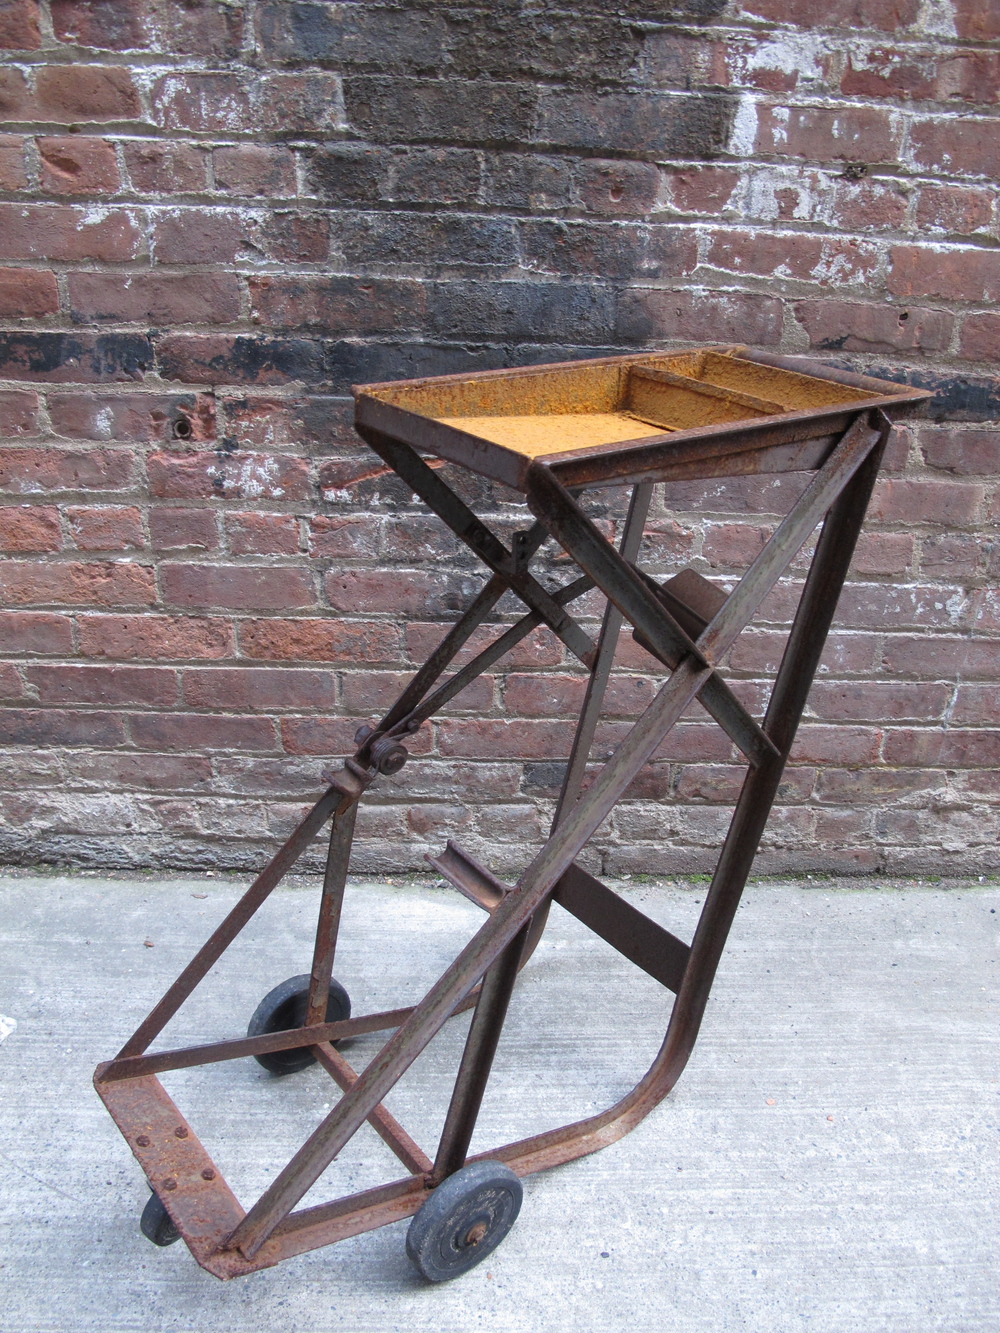 Rusted vintage metal rolling cart